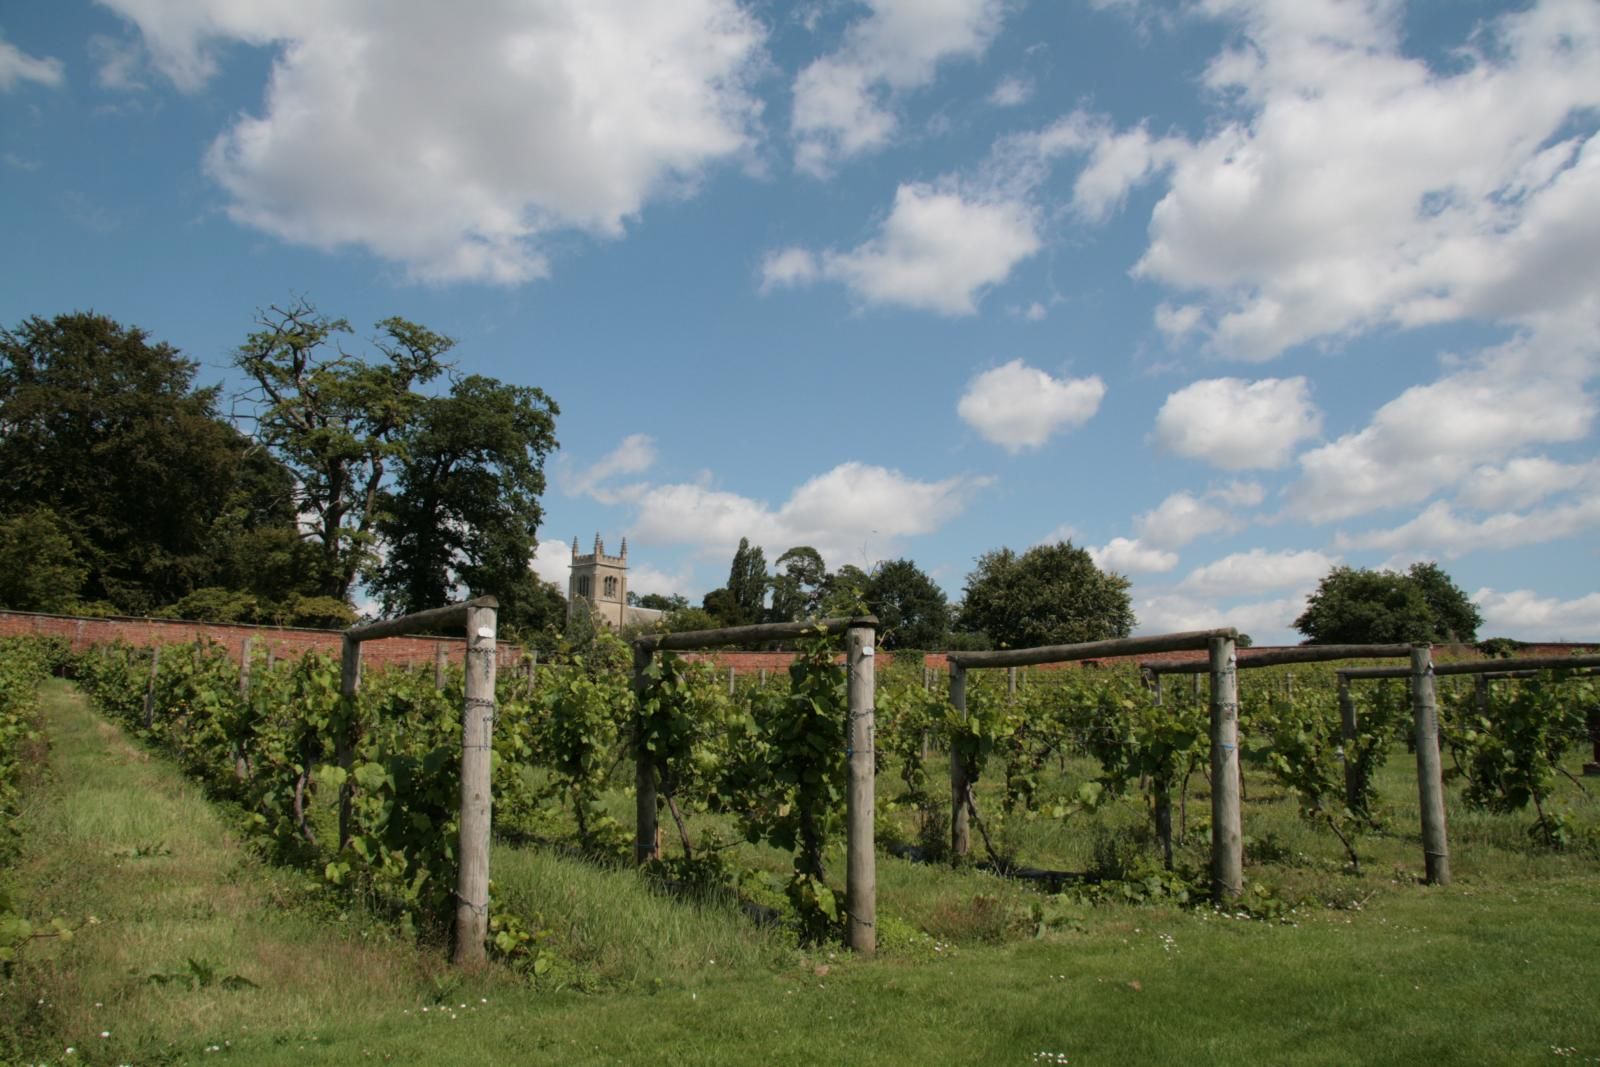 Wine stay in England - England - Wine regions - 1